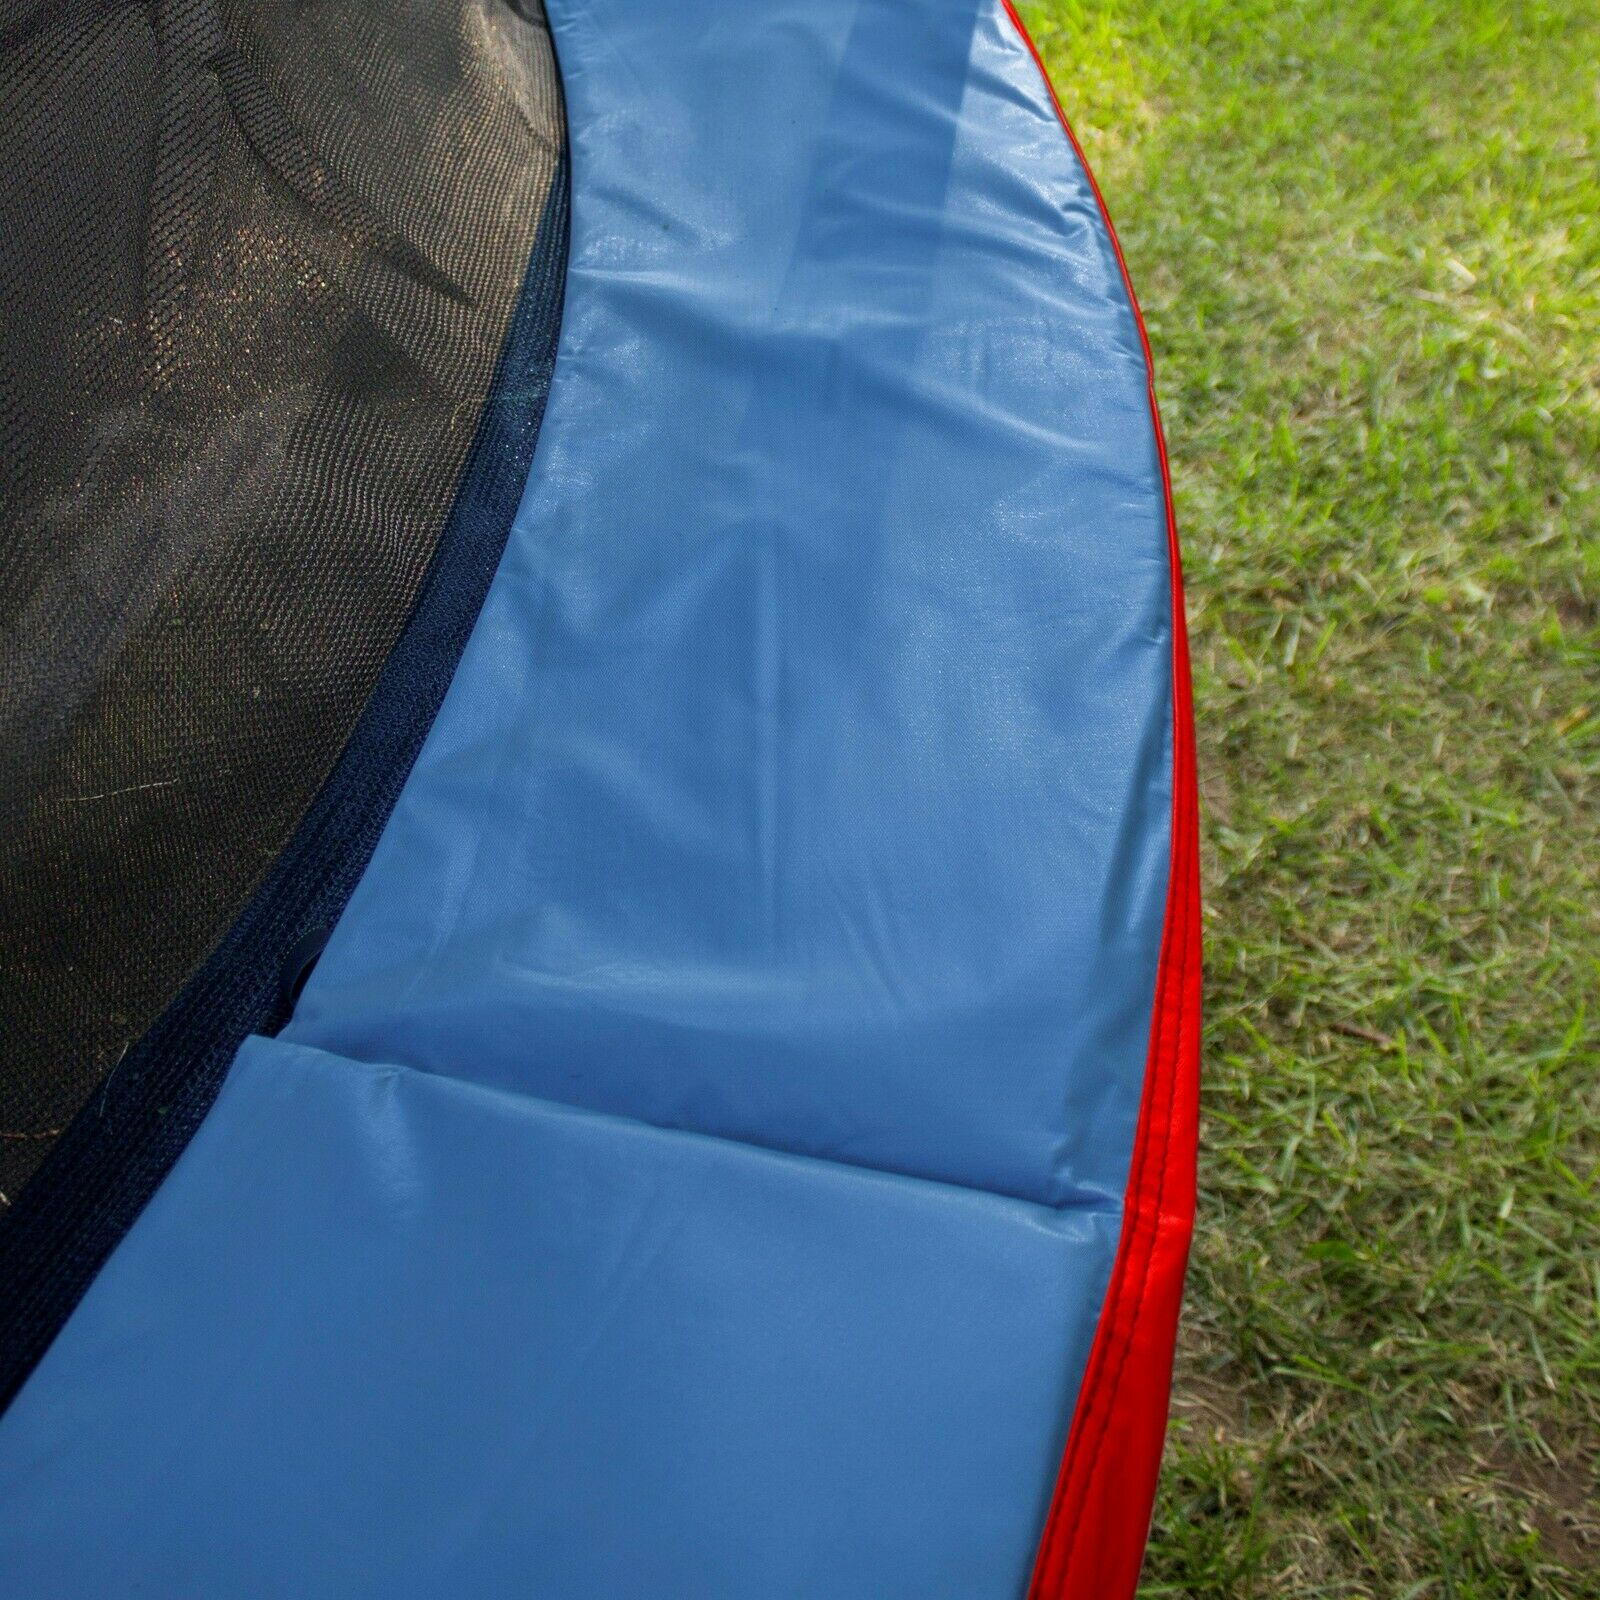 BOUNCE PRO 12FT TRAMPOLINE SPRING COVER, BLUE/RED